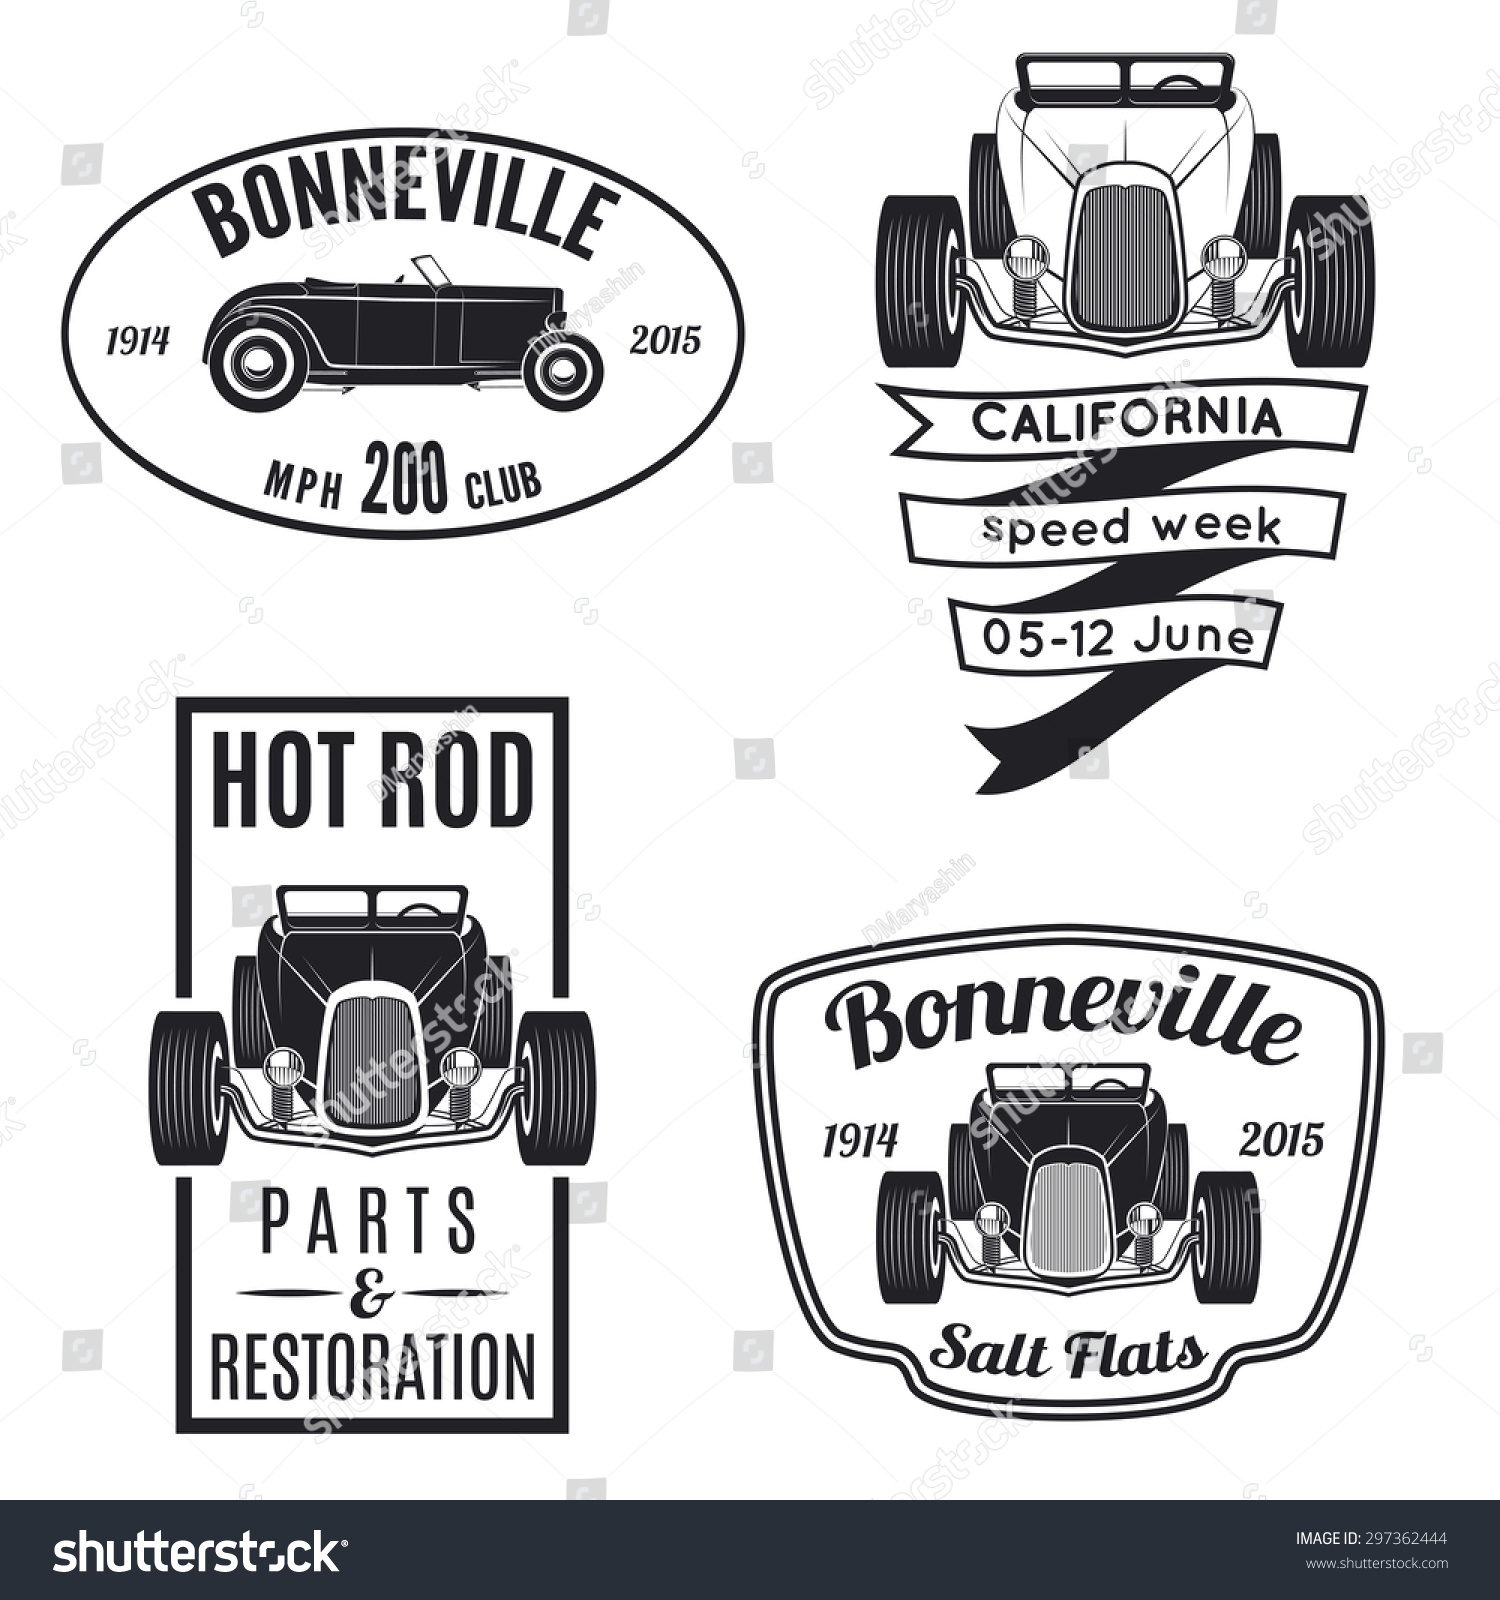 bonneville car club with Vector Set Vintage Hot Rod Car 297362444 on Wallpaper 0c additionally 1965 PONTIAC CATALINA 2 DOOR HARDTOP 2And2 89326 further 2010 Milan in addition Sale additionally Los Accidentes De Coche Mas Recordados.